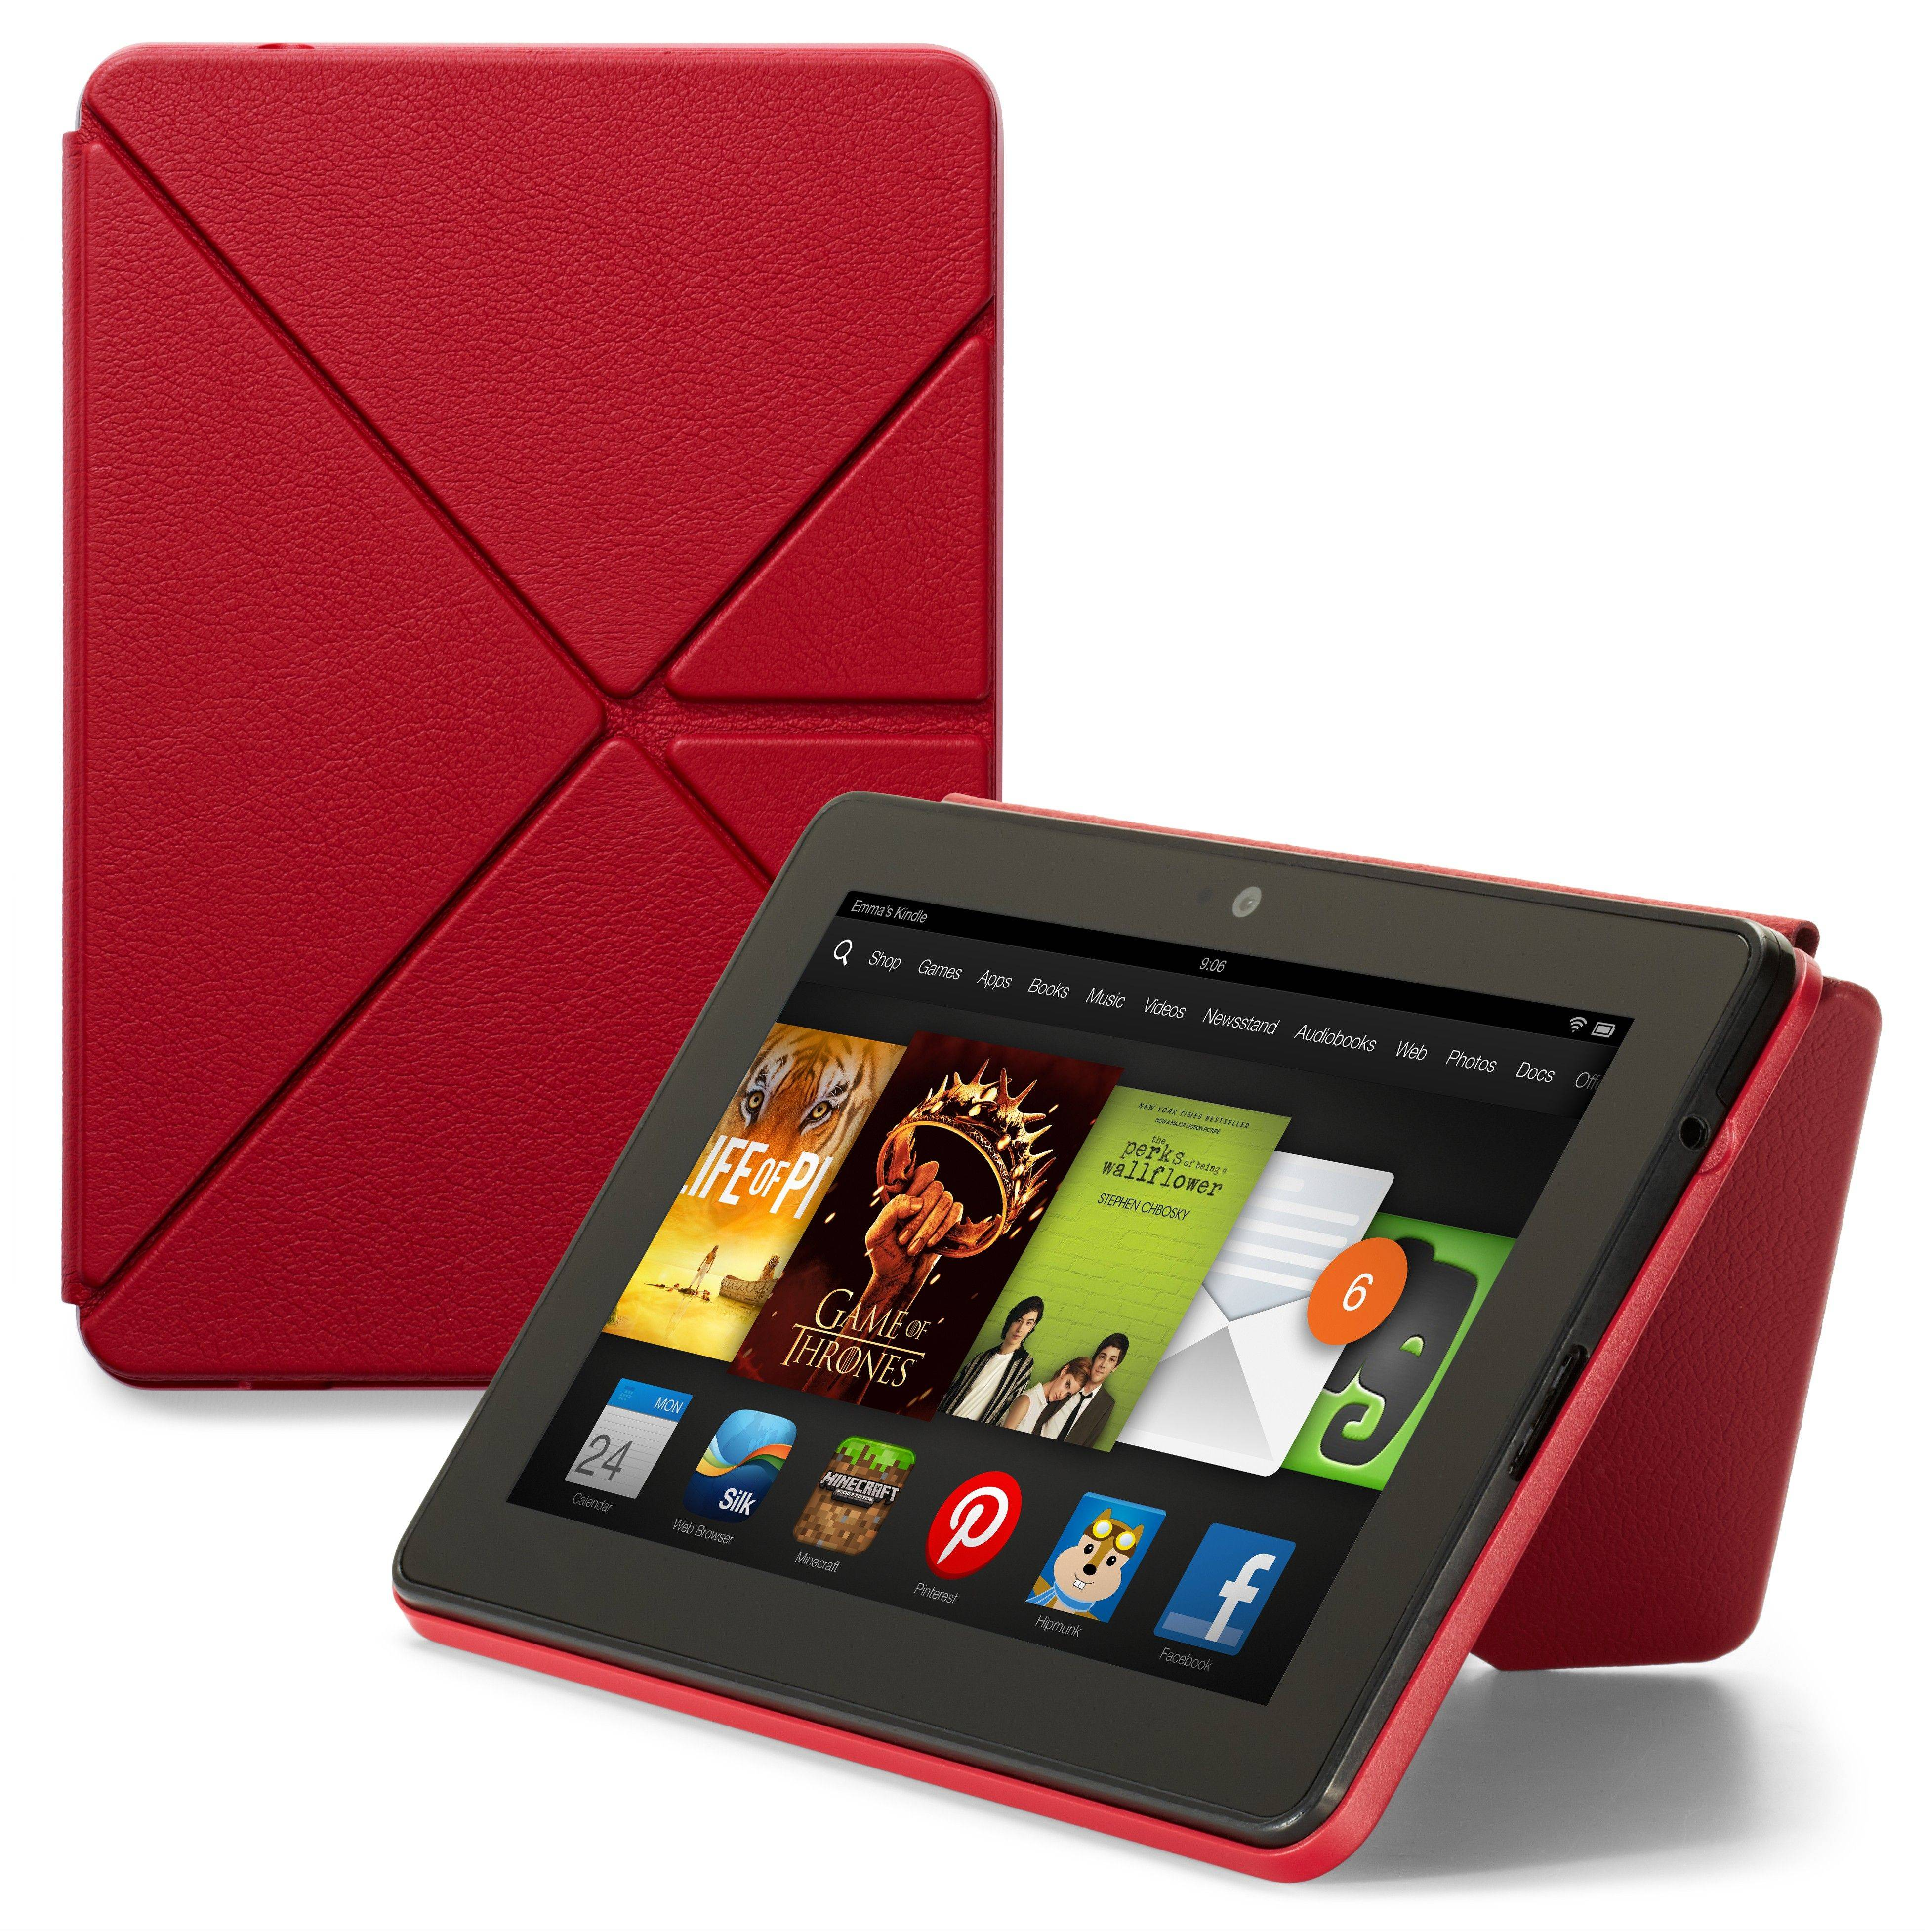 "This product image provided by Amazon.com on Tuesday shows the new 7-inch Amazon Kindle HDX tablet computer with the optional ""Origami"" cover that works as a stand and screen protector. Amazon has refreshed its lineup of tablets with new HDX devices, which are significantly faster and lighter than the previous generation."